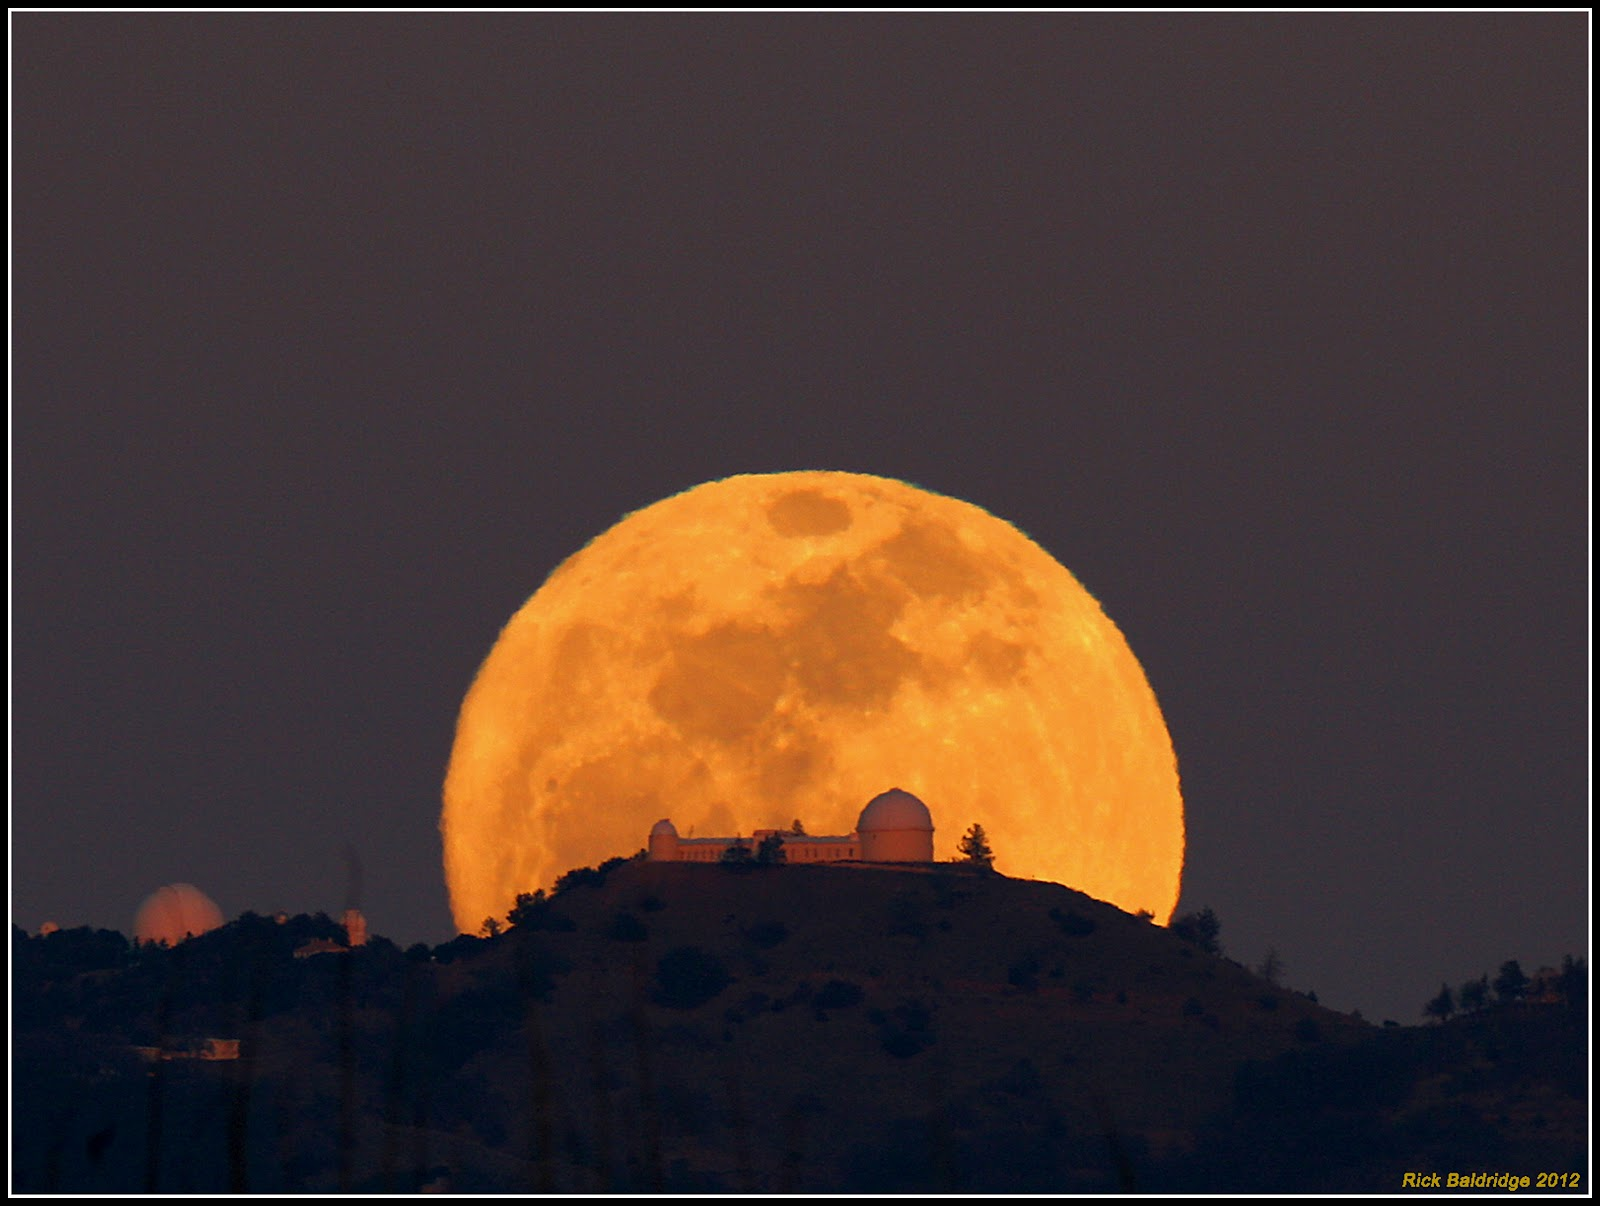 http://danspace77.com/2014/09/07/final-supermoon-of-2014-and-the-list-for-2015/